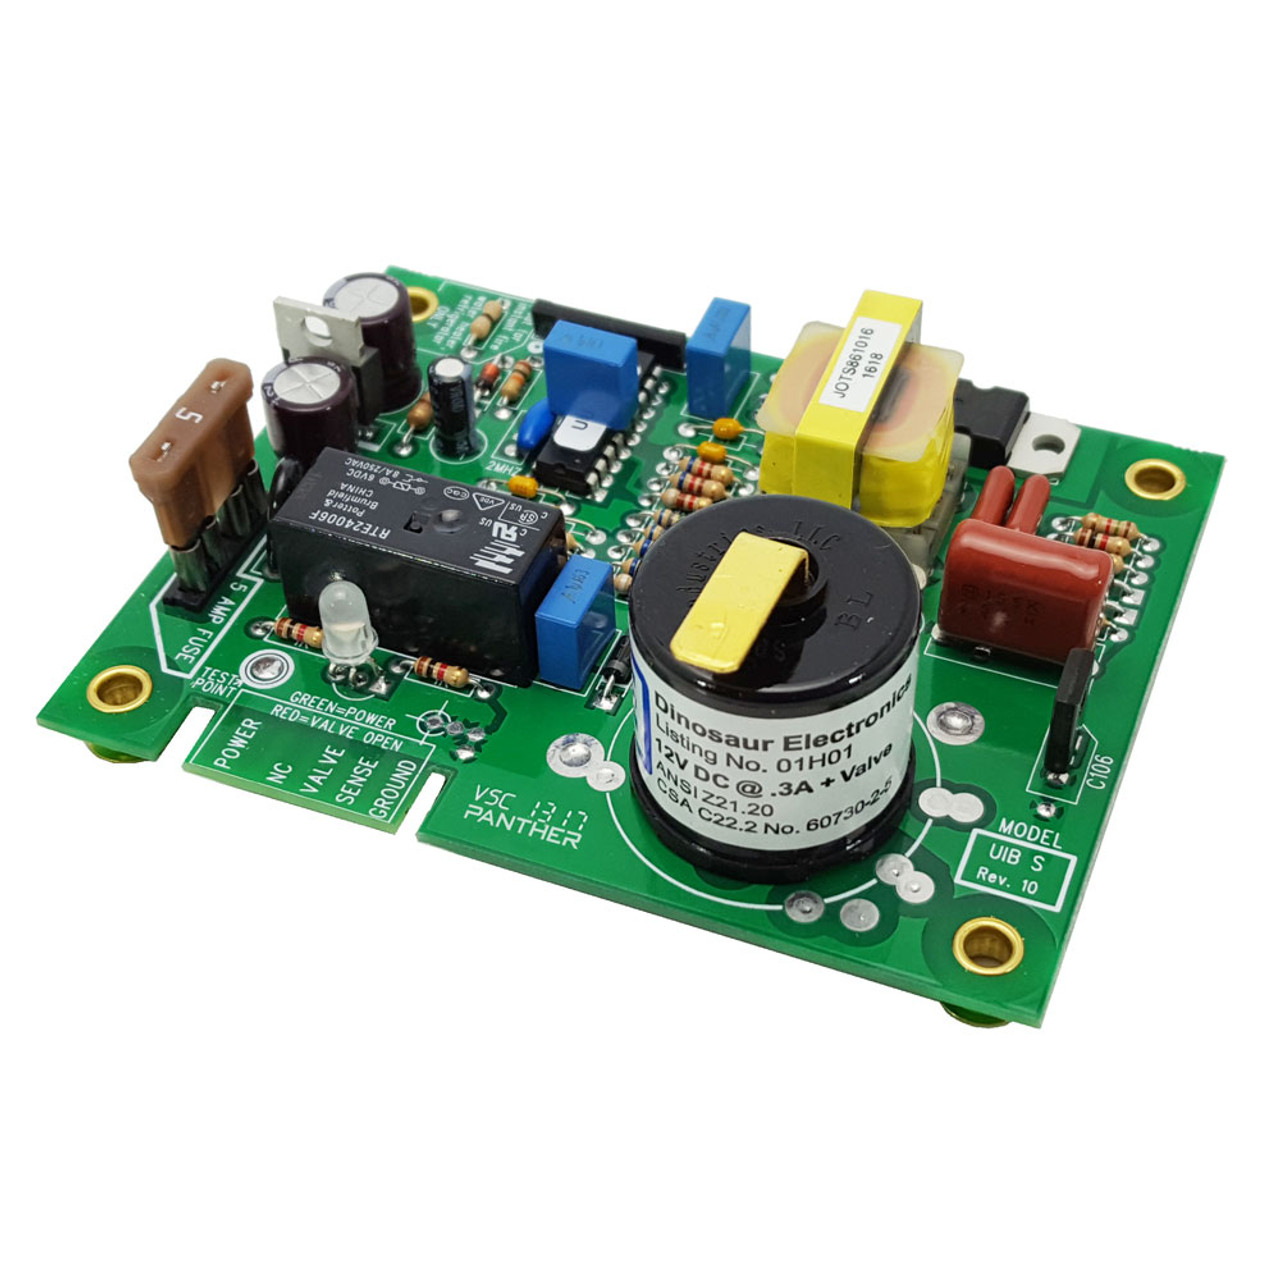 hight resolution of dinosaur elect uib s universal ignitor control board small atwood 93865 circuit board wiring diagram